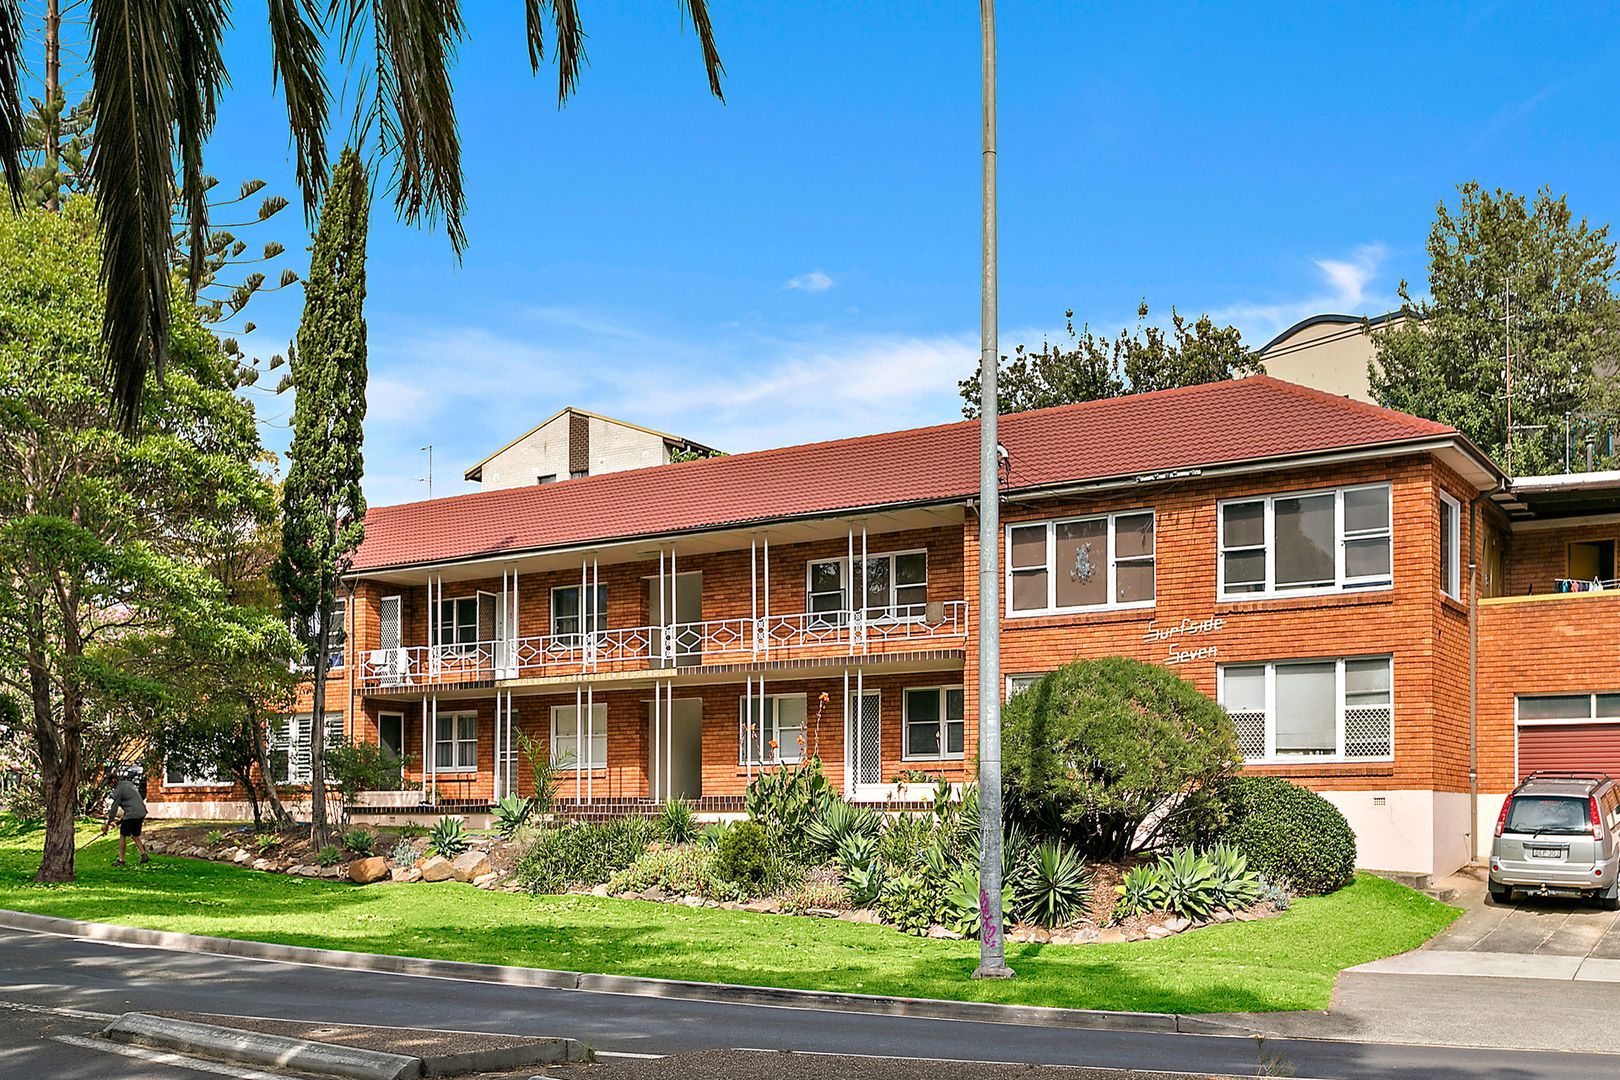 2/1 George Hanley Drive, North Wollongong NSW 2500, Image 0